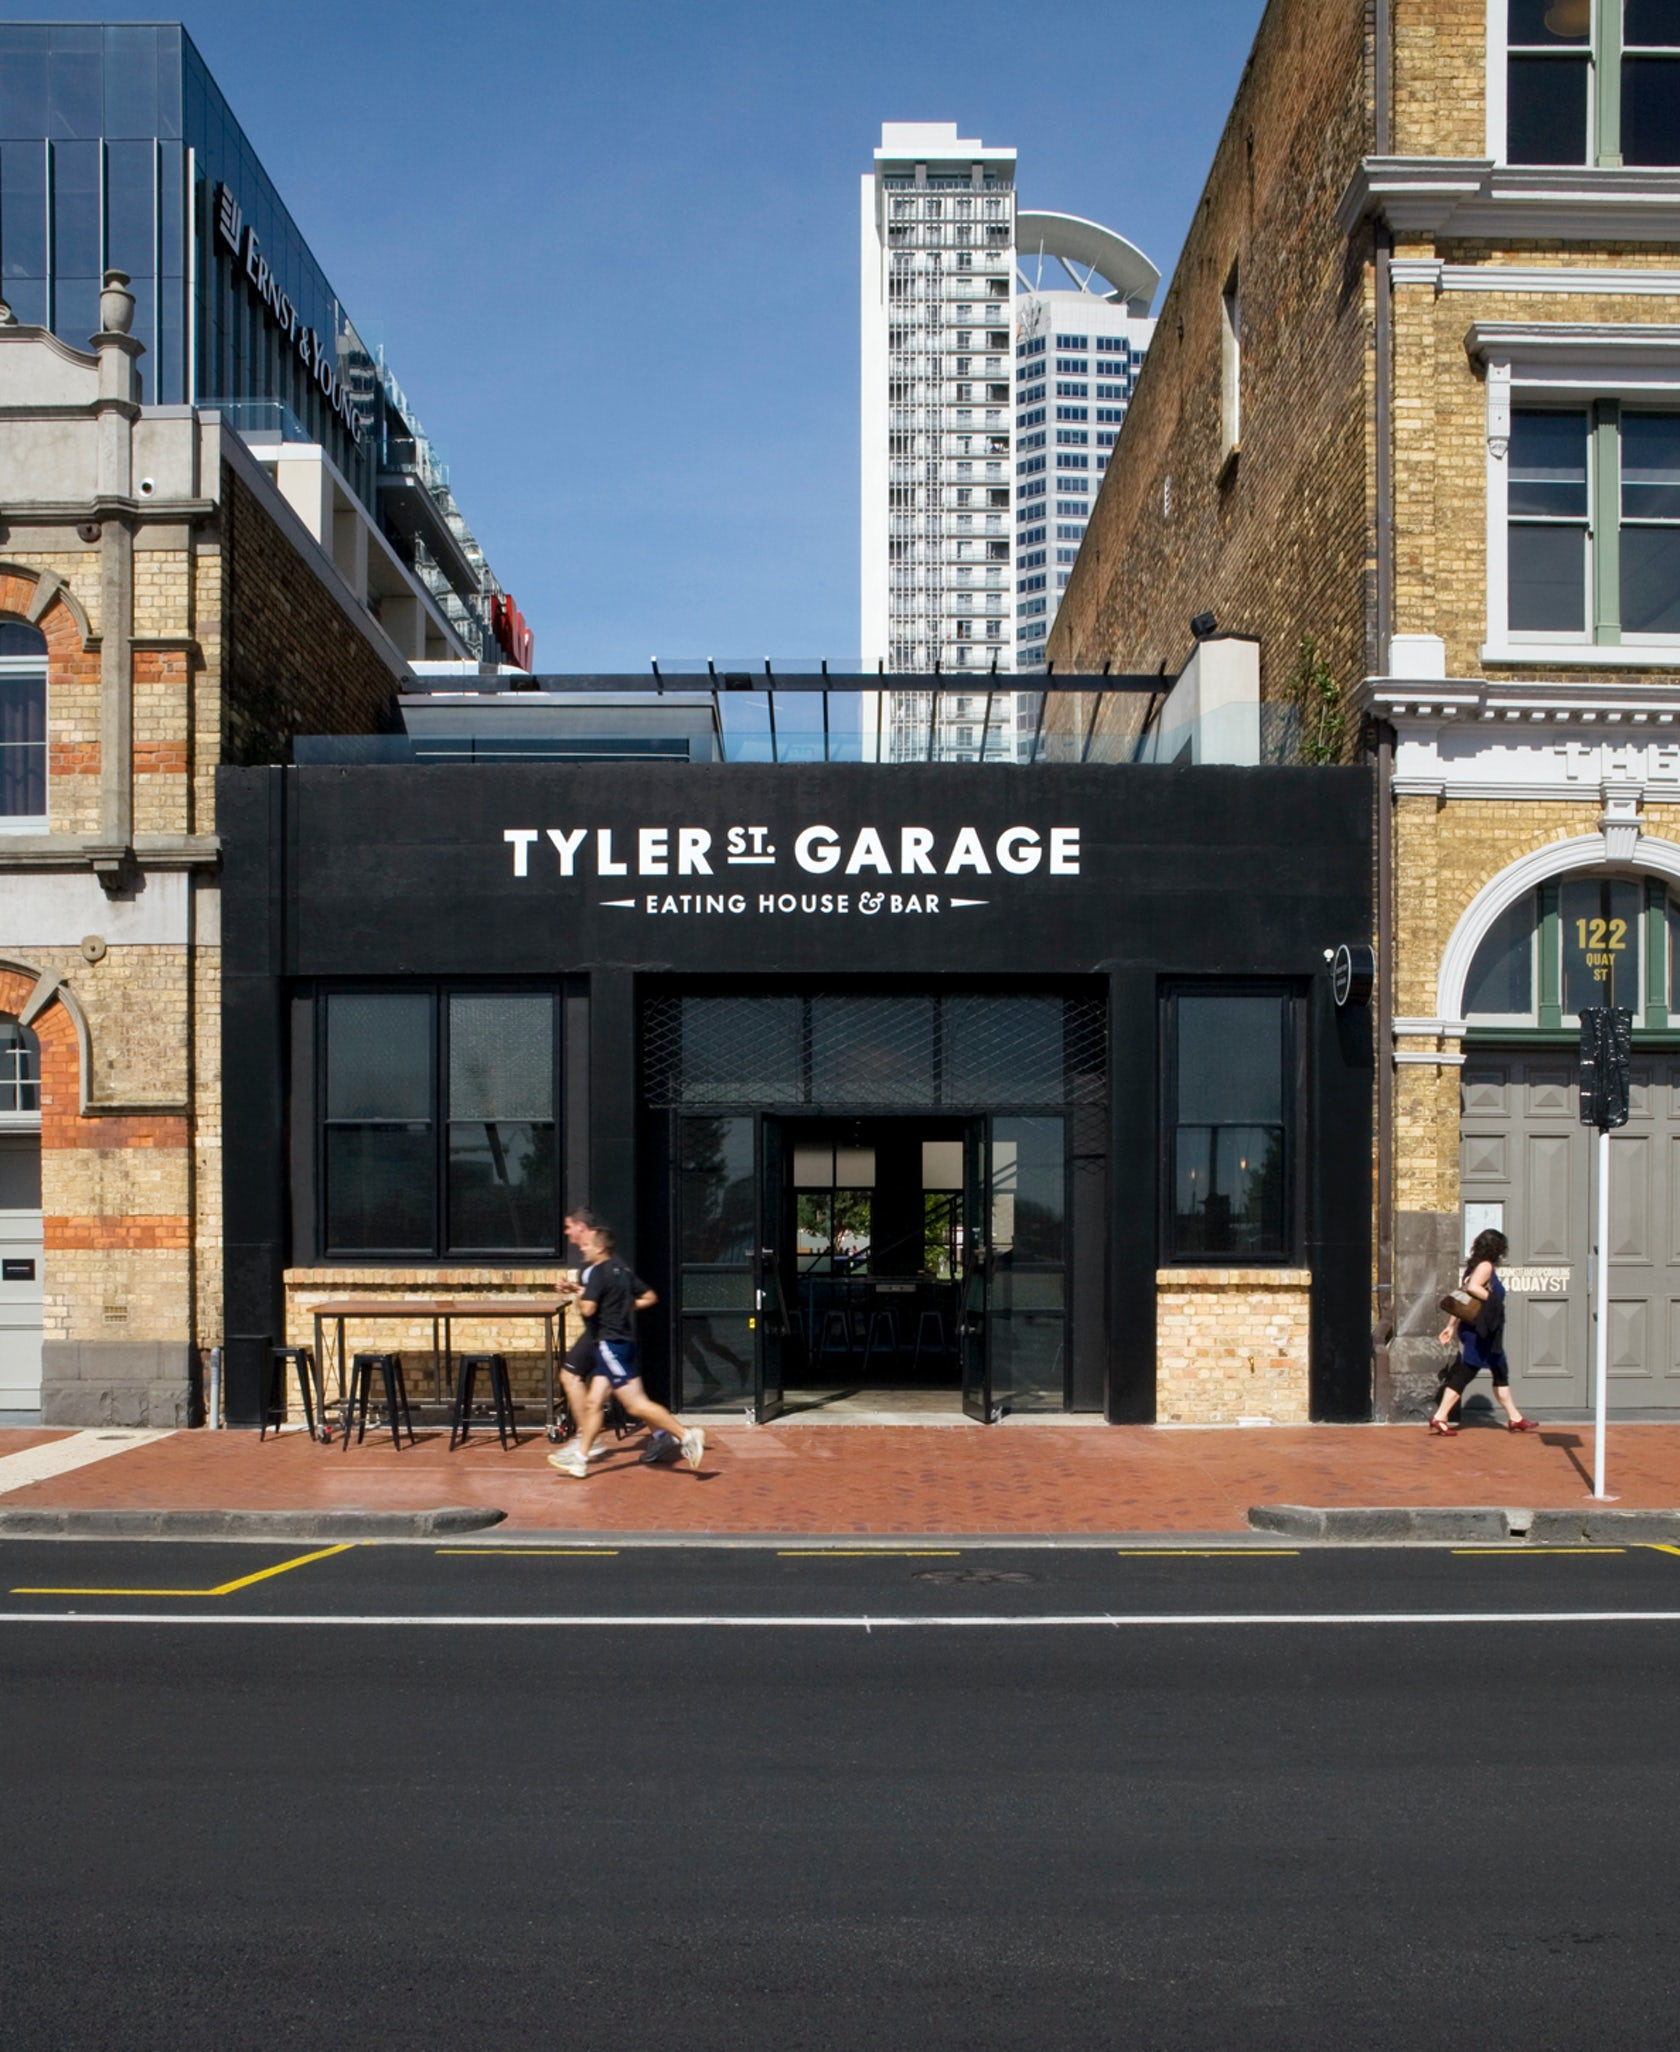 Tyler street garage architizer